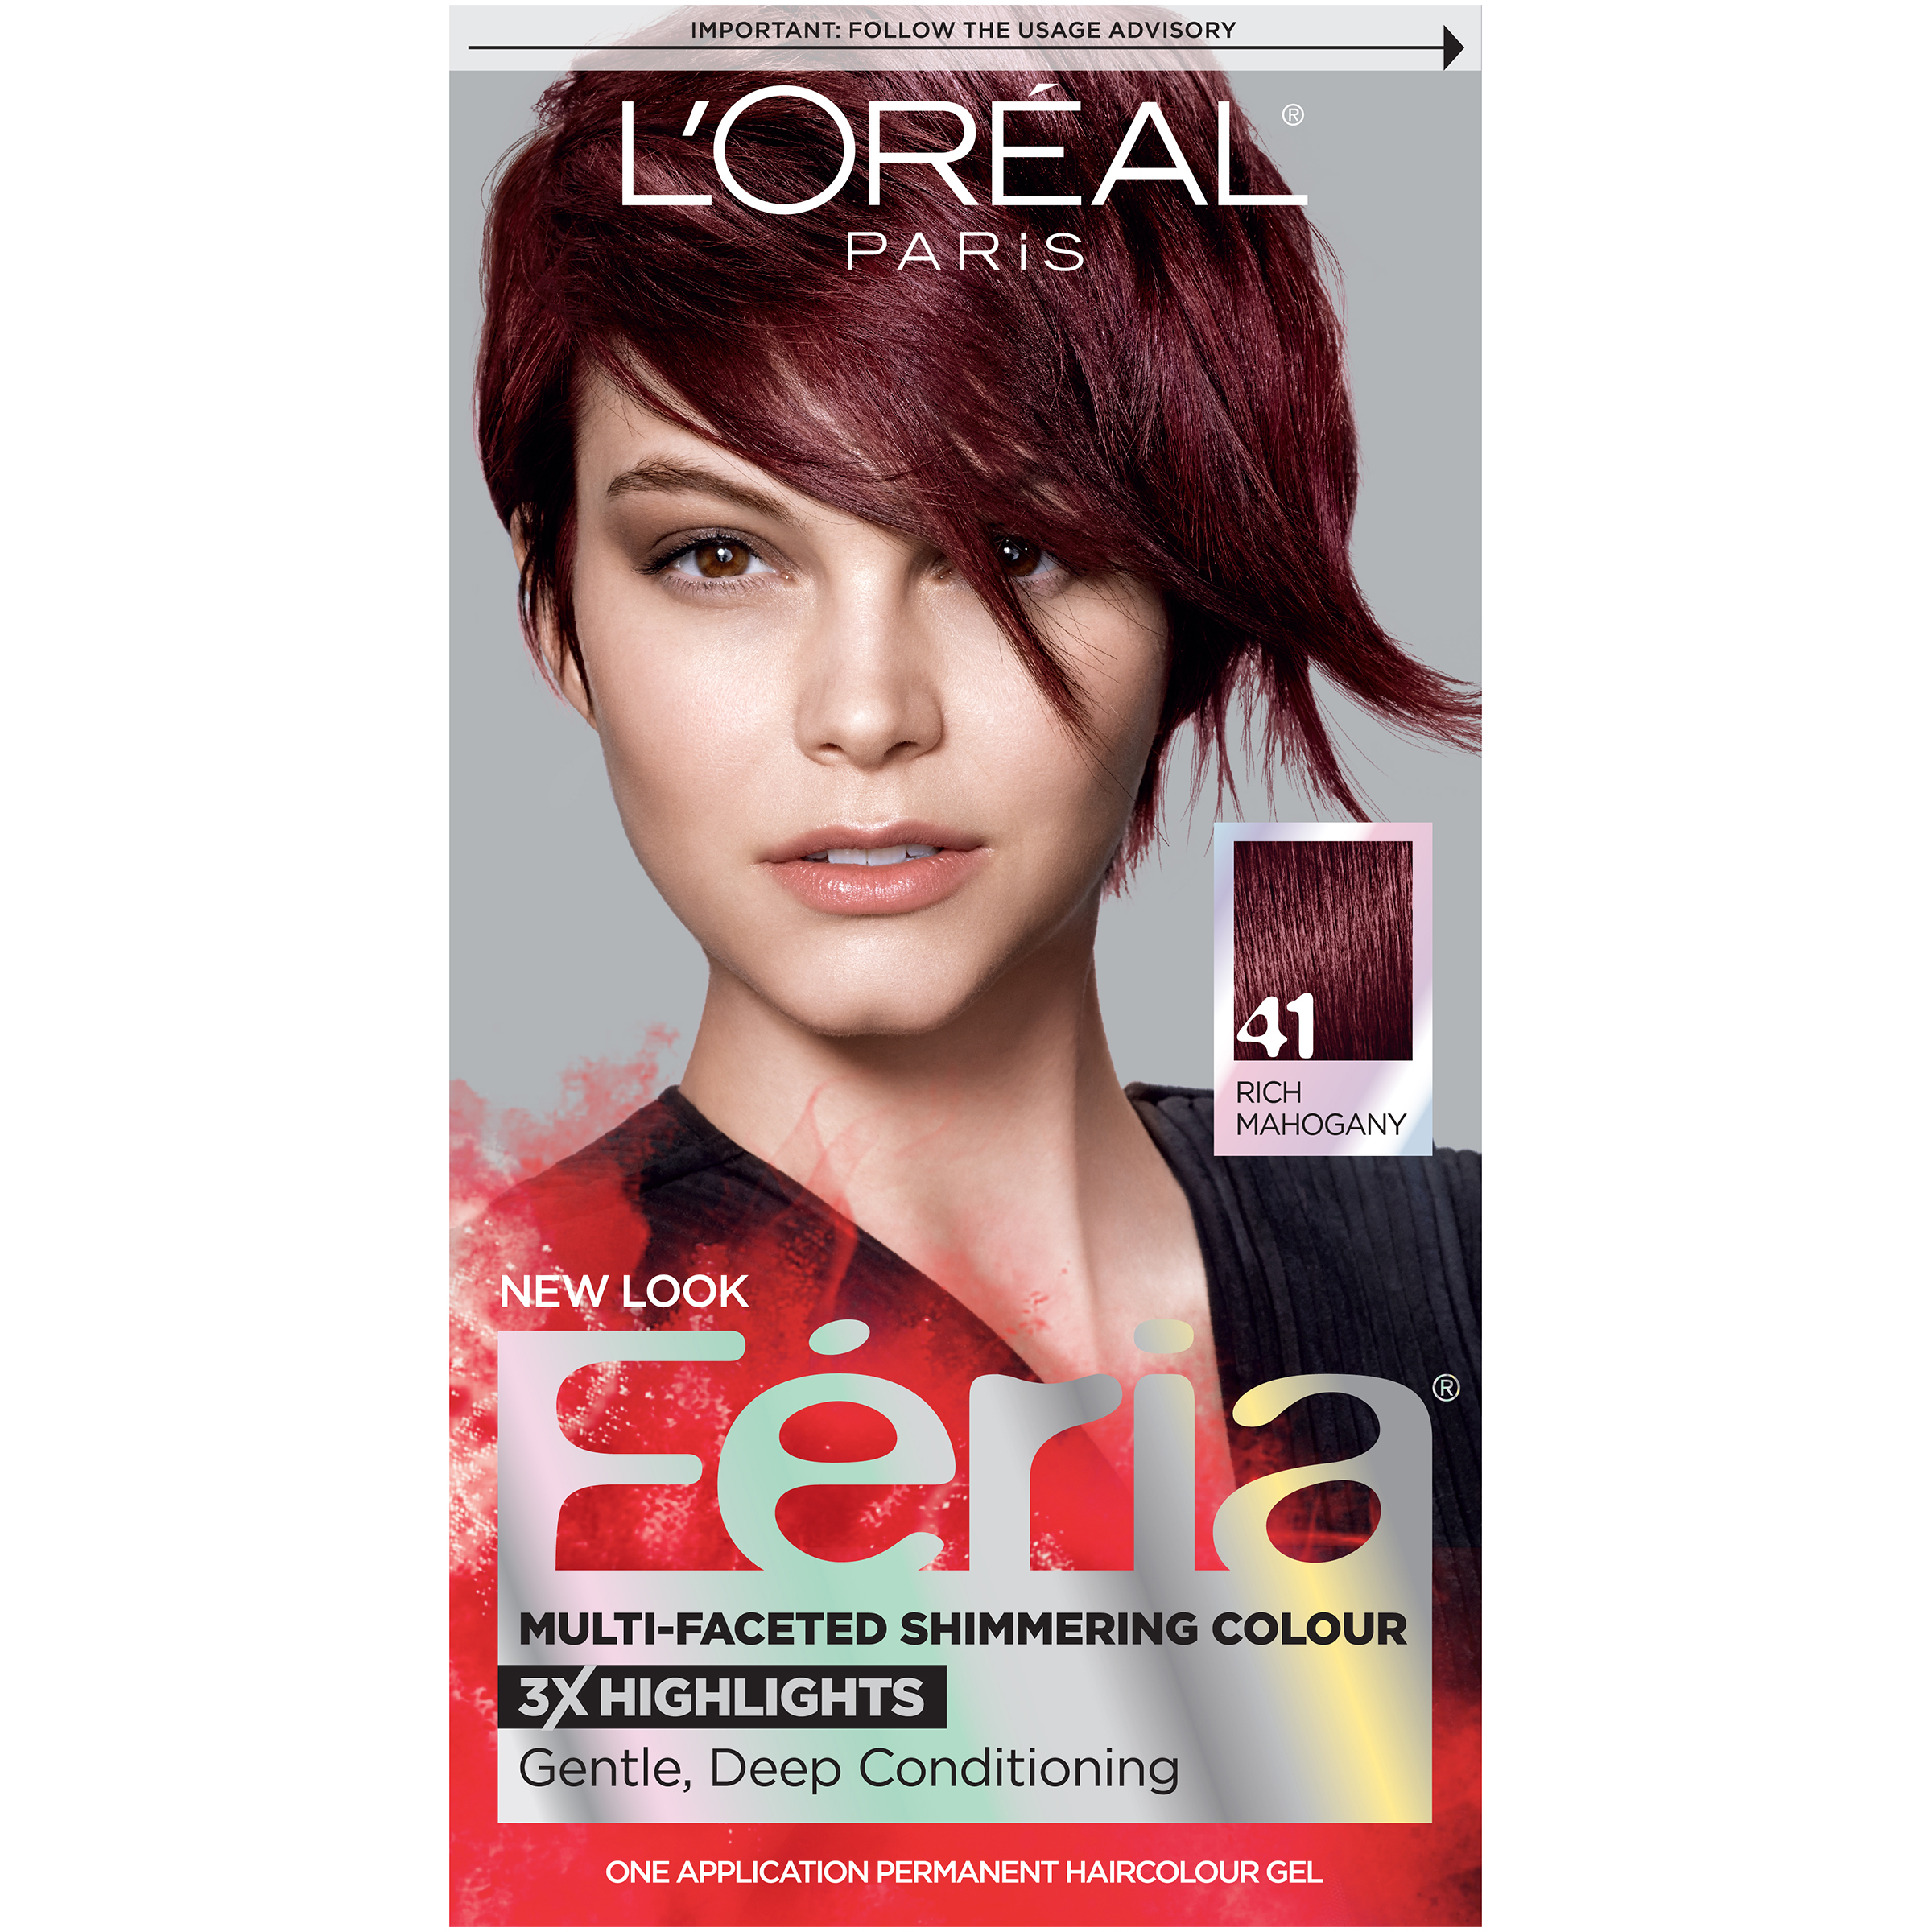 Loreal Paris Feria 41 Crushed Garnet Rich Mahogany Hair Dye Color